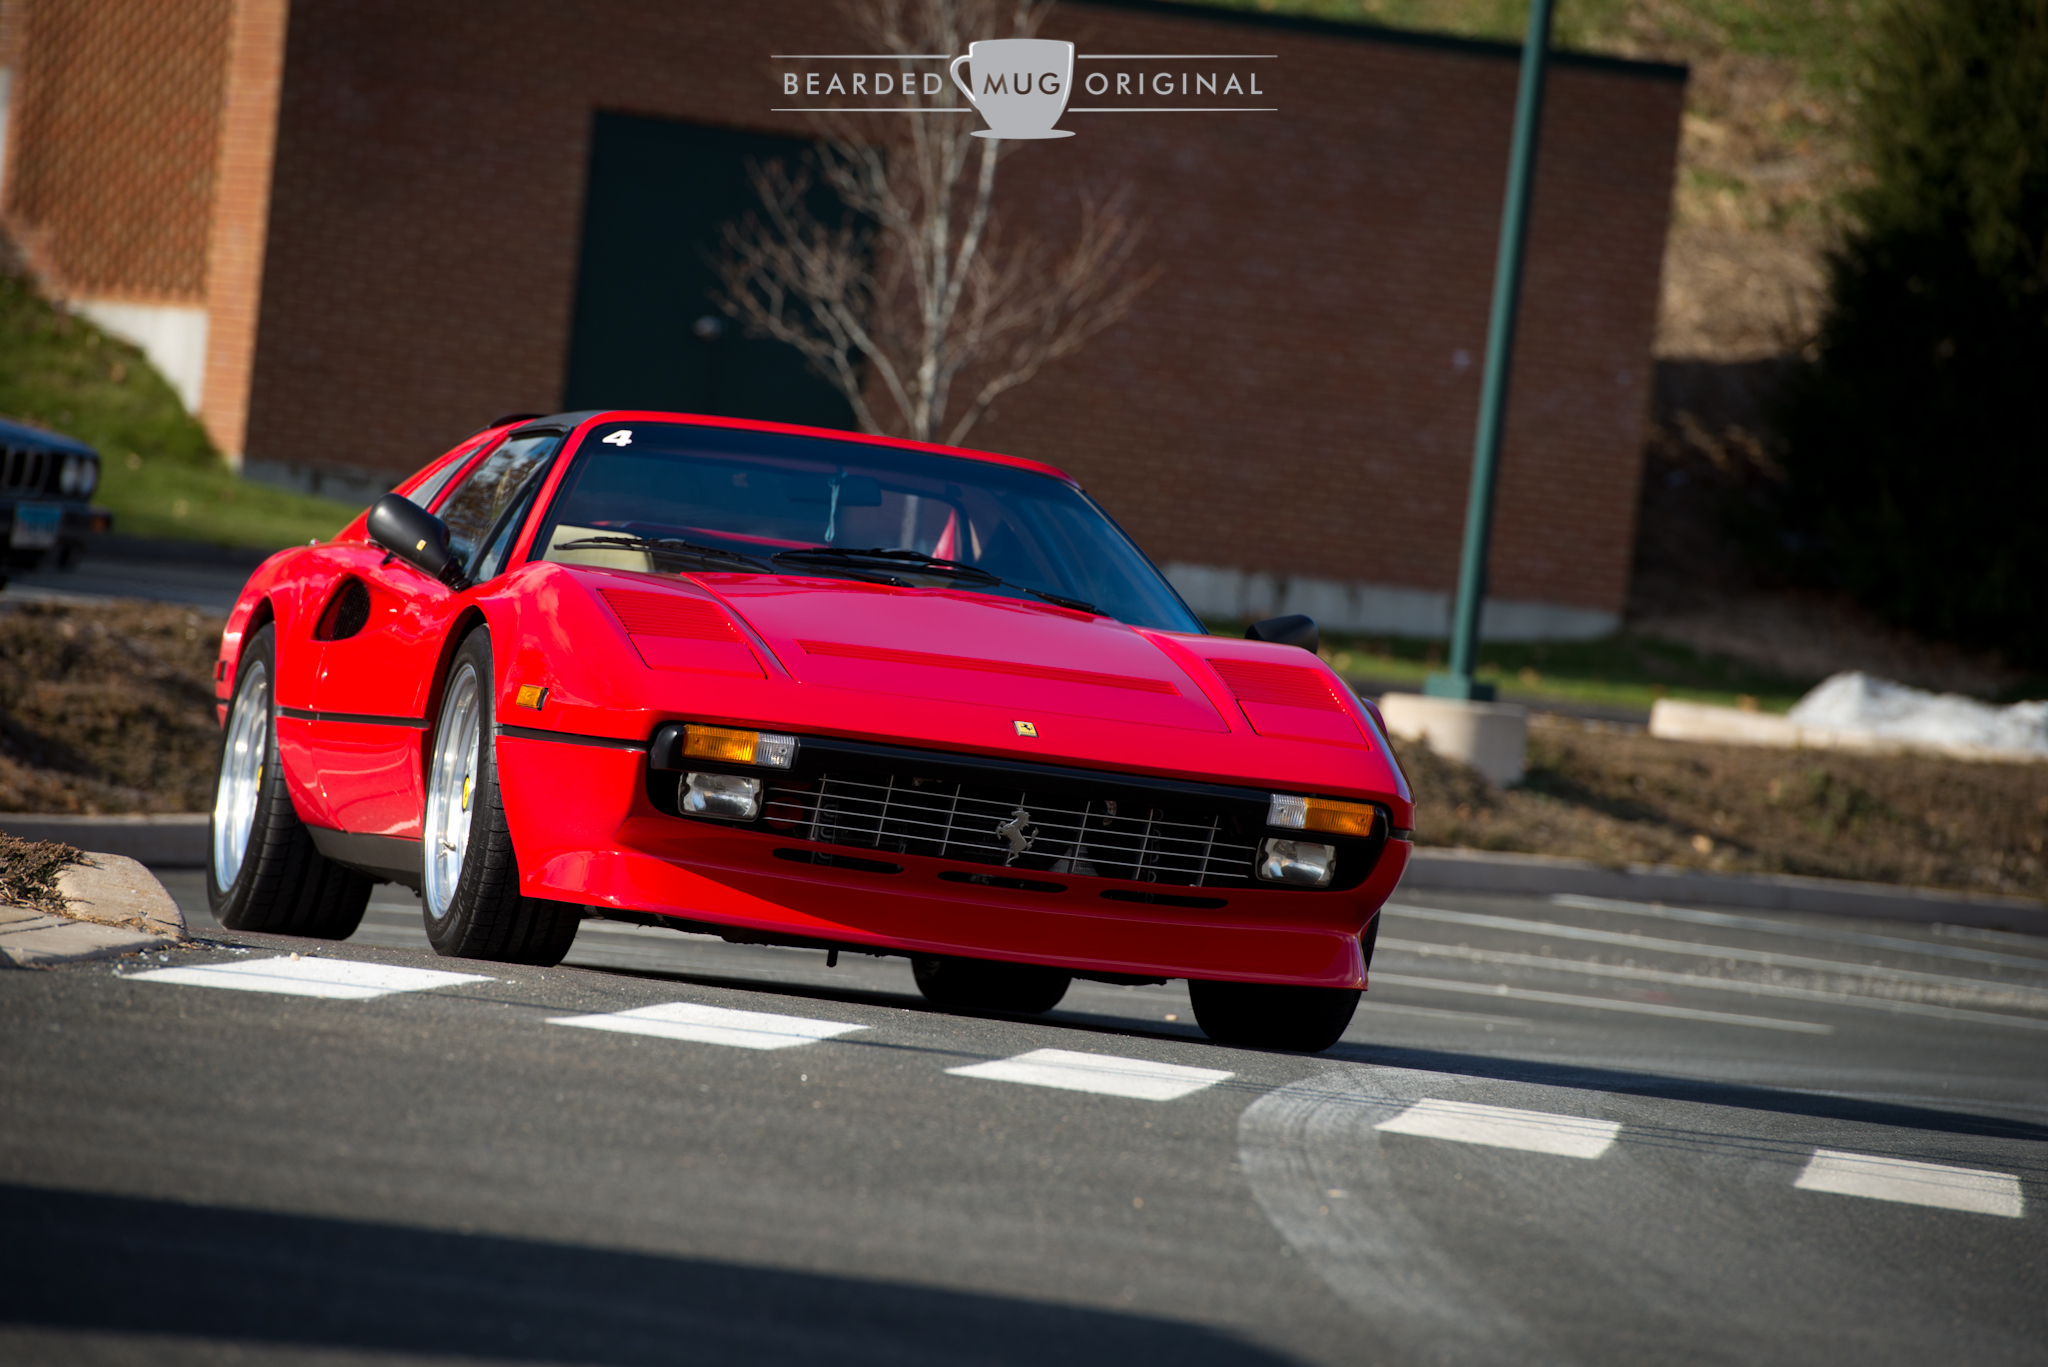 This is the cleanest 308 GTS that I have ever seen, evidenced by the multiple awards that the owner has taken home.